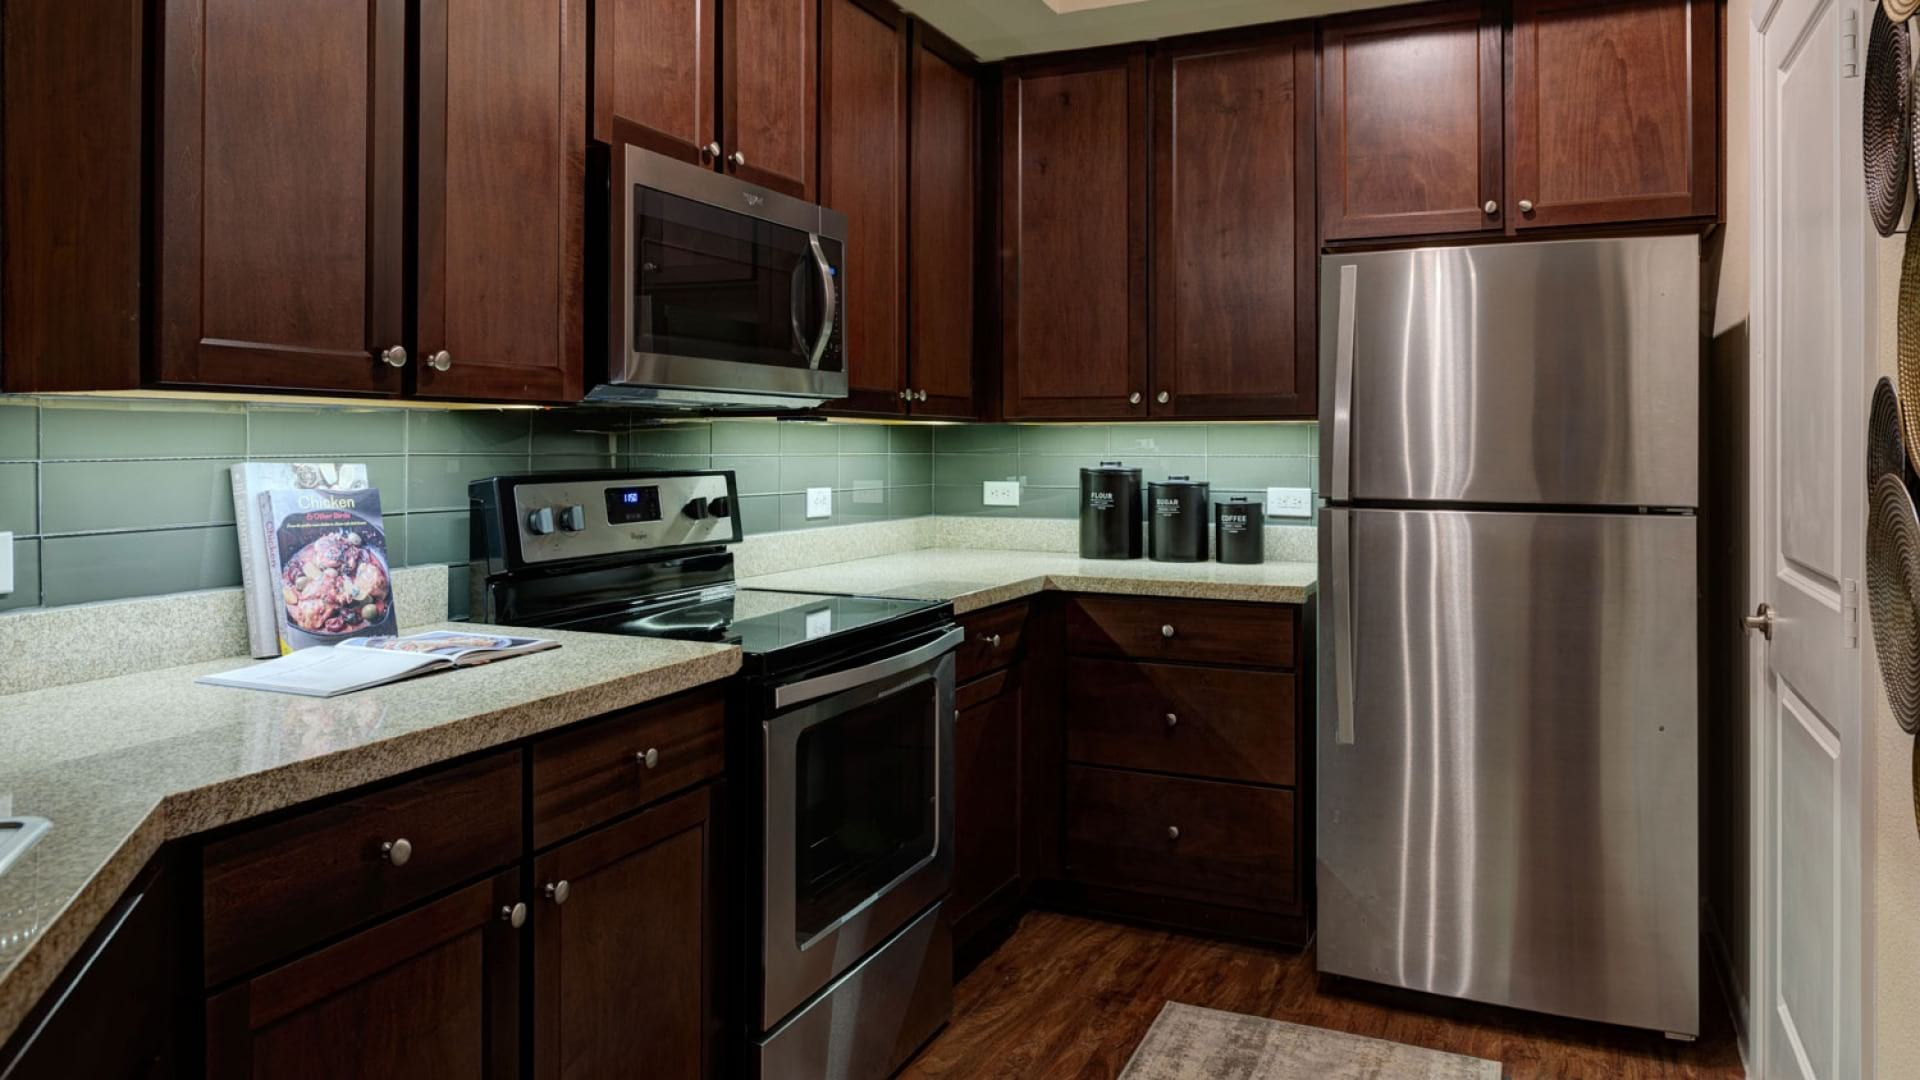 1, 2, and 3 Bedroom Apartments for rent in San Antonio